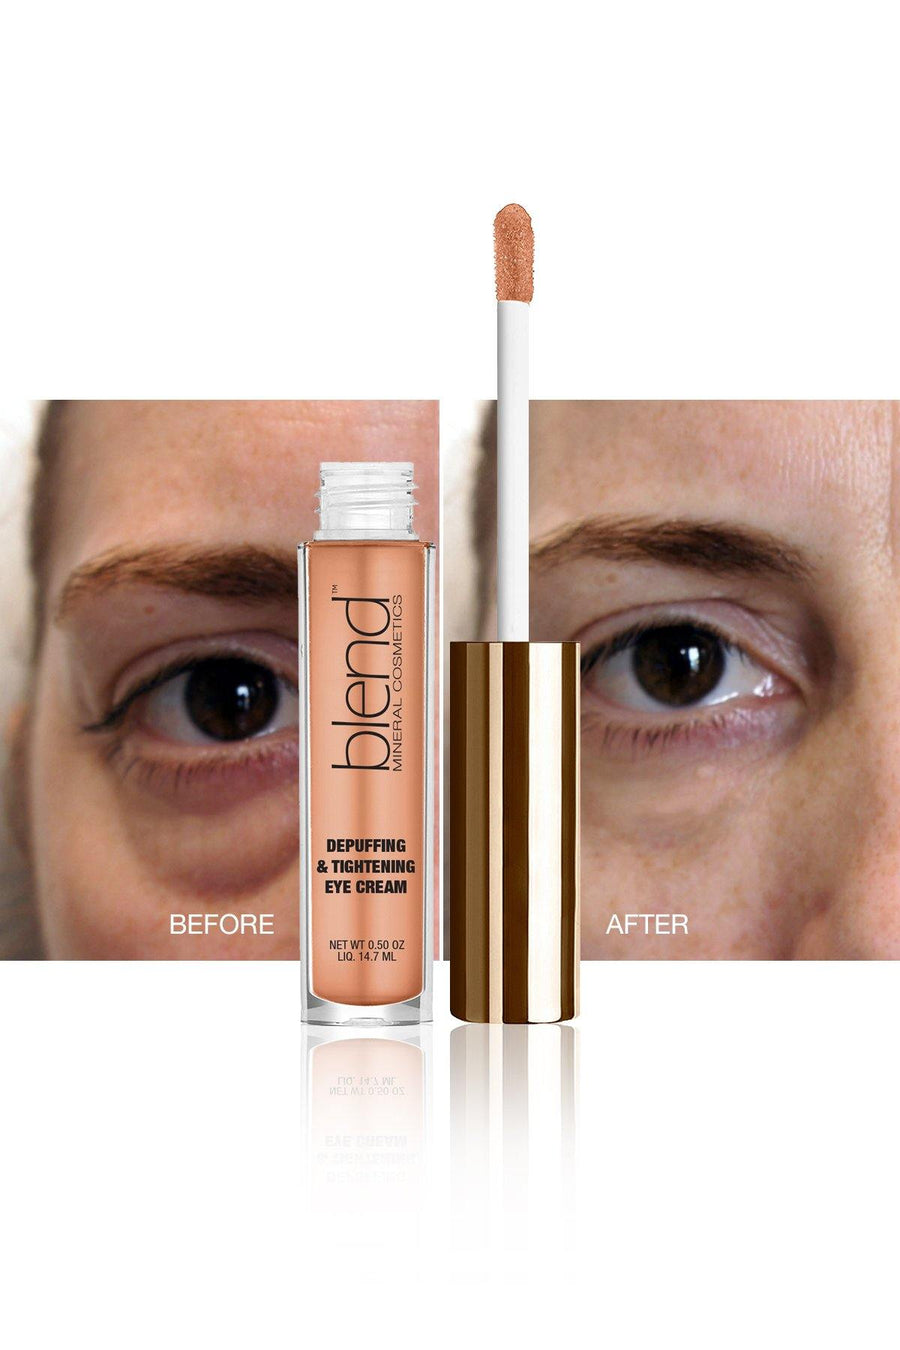 Depuffing & Tightening Eye Cream - LIMITED TIME OFFER